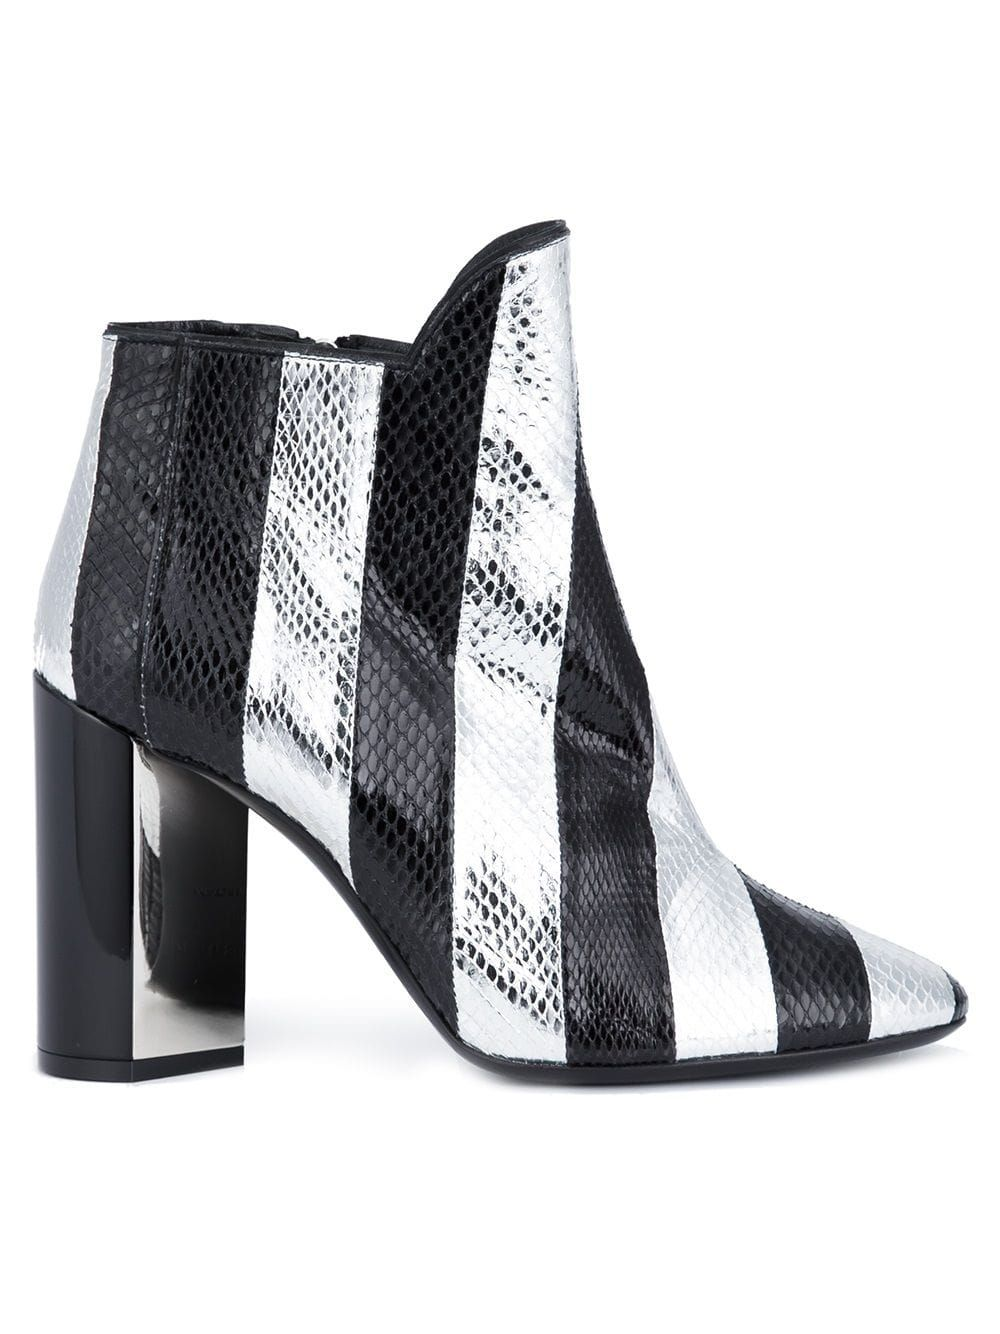 Pierre Hardy 'Belle' boots Black in 2019 | Products